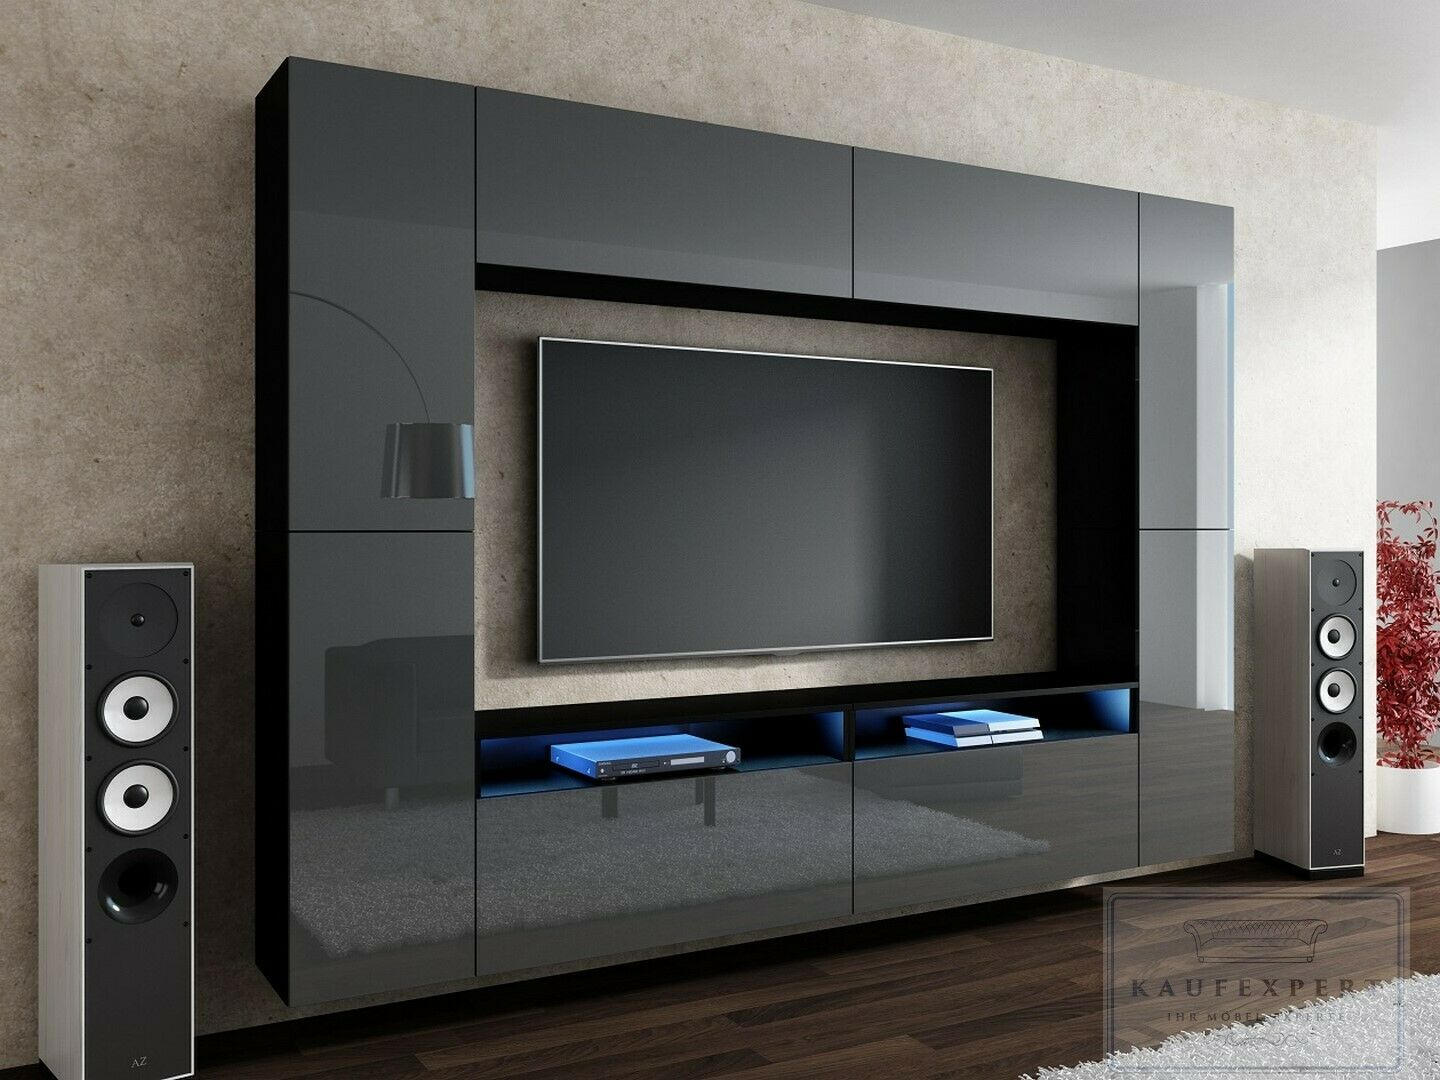 neuheit wohnwand cinema grau hochglanz schwarz mediawand led concept modern eur 699 00. Black Bedroom Furniture Sets. Home Design Ideas